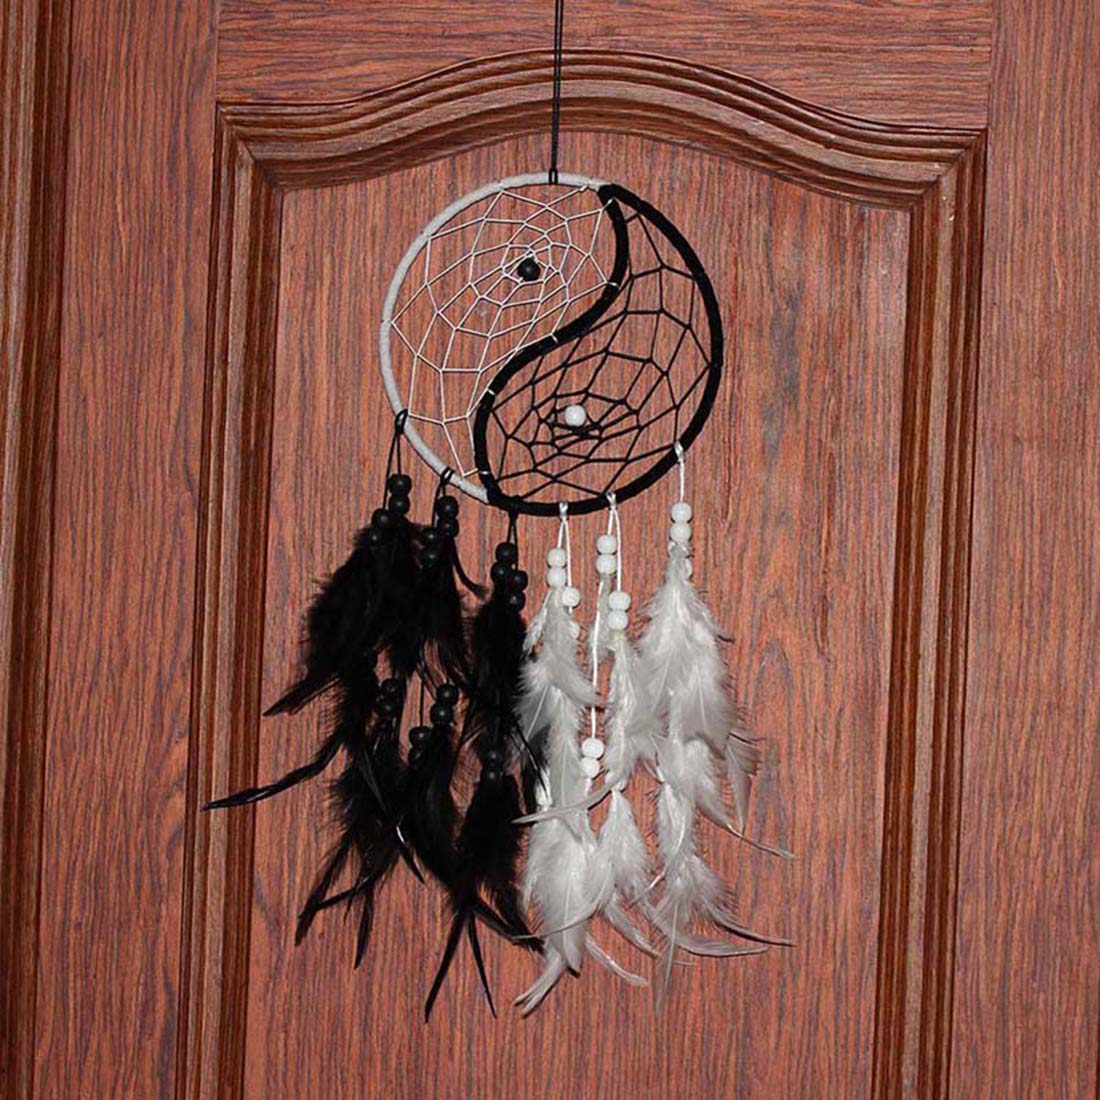 Fashion wind chimes peacock feather pendant dream catcher home decor hanging decoration - Peacock feather decorations home decor ...